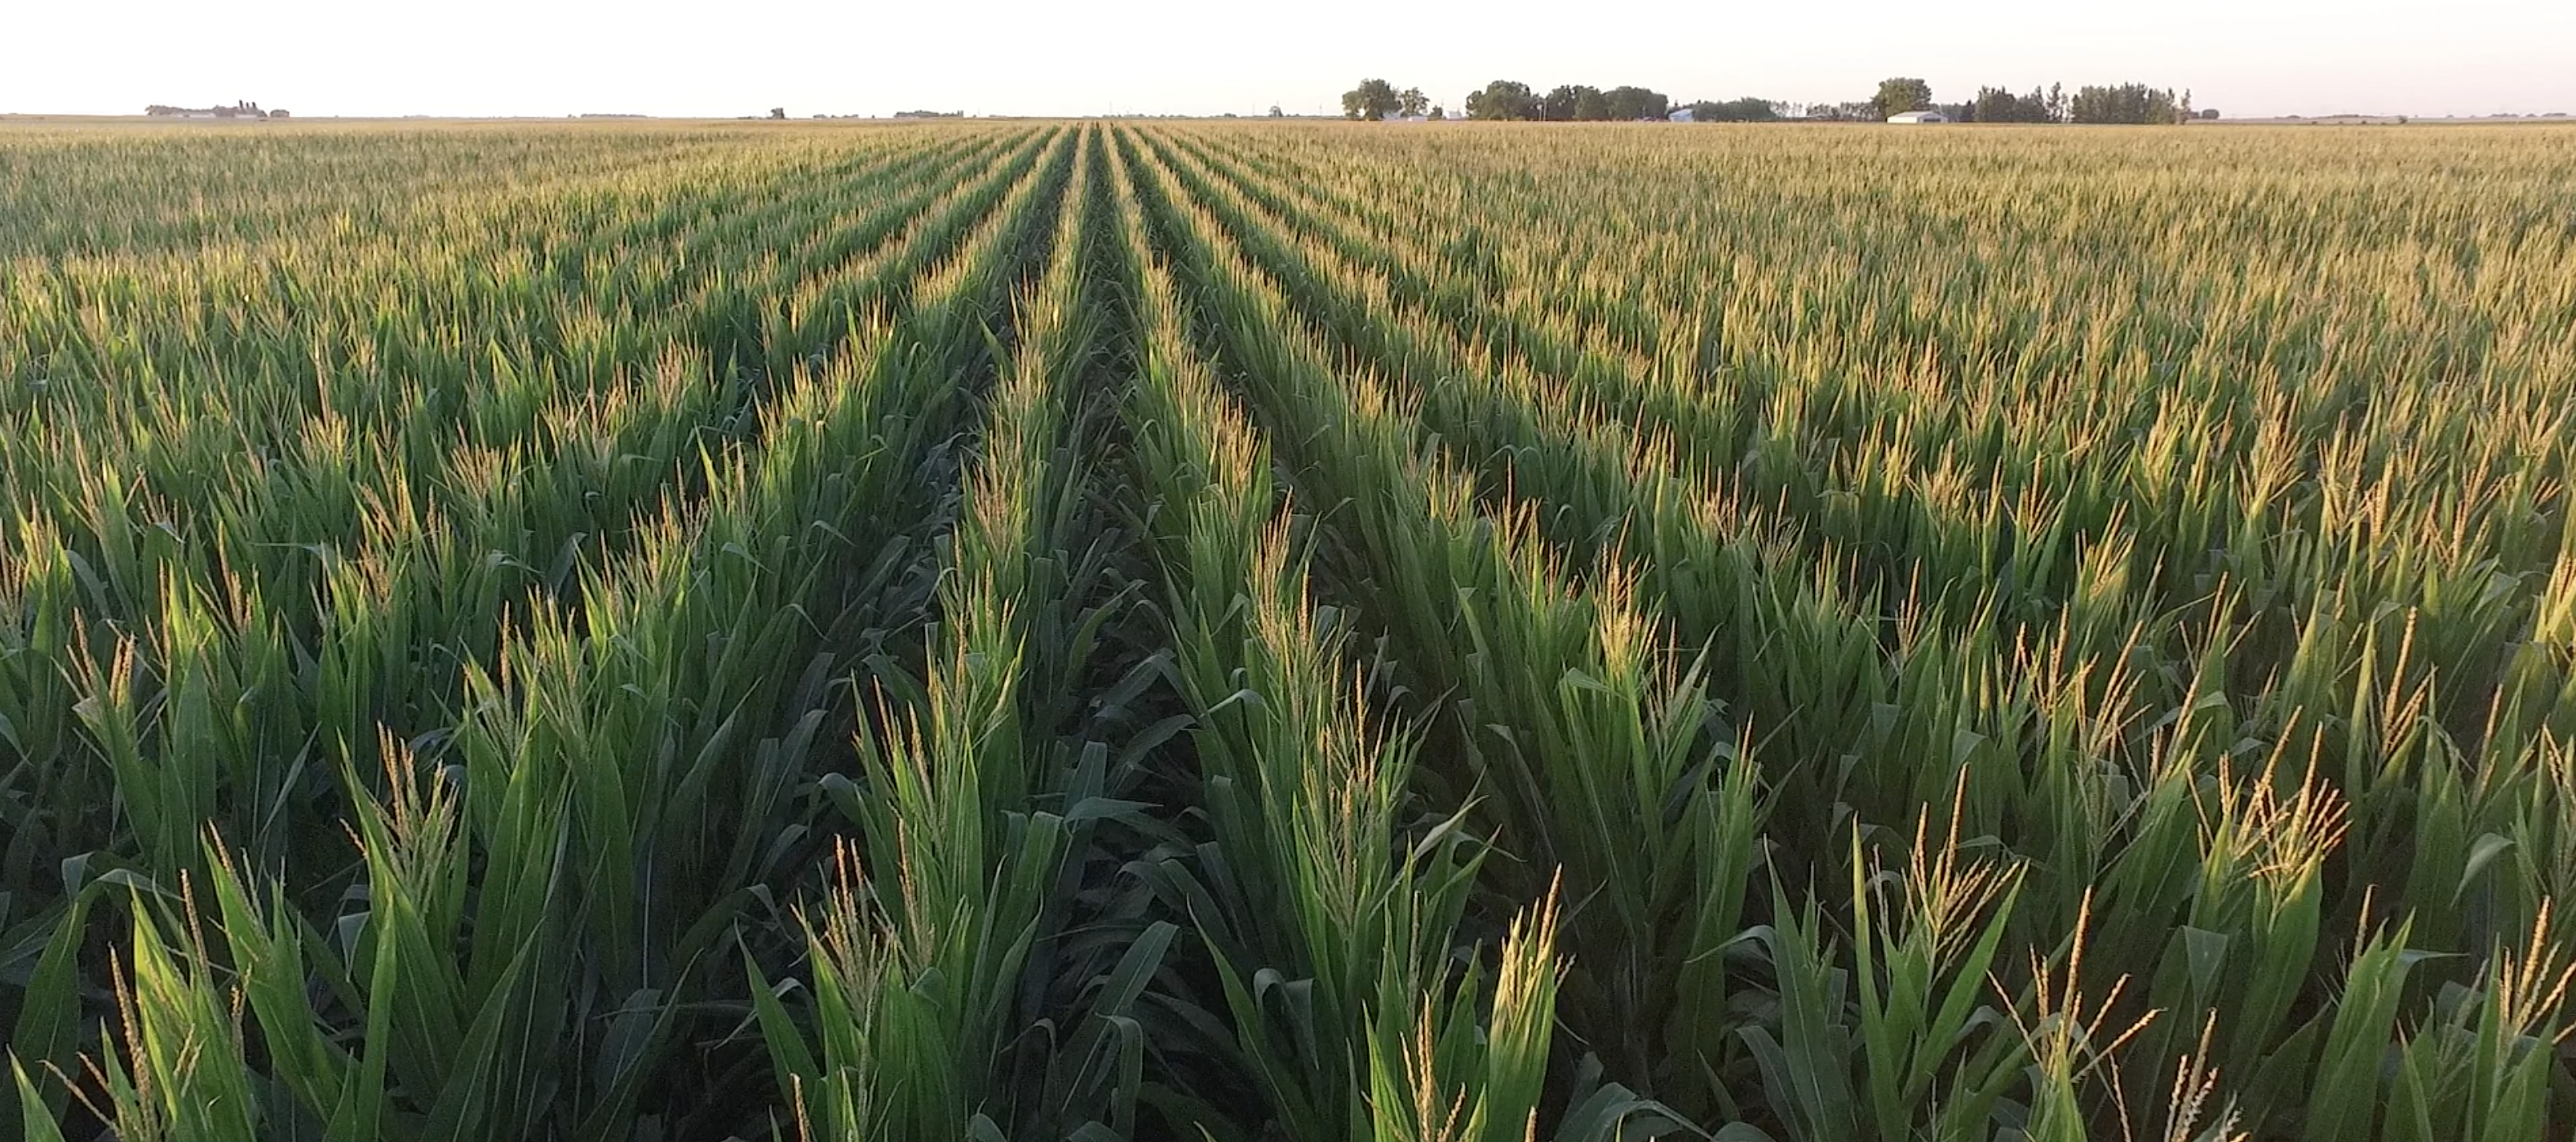 Use Agronomic and Economic Data to Make Management Decisions